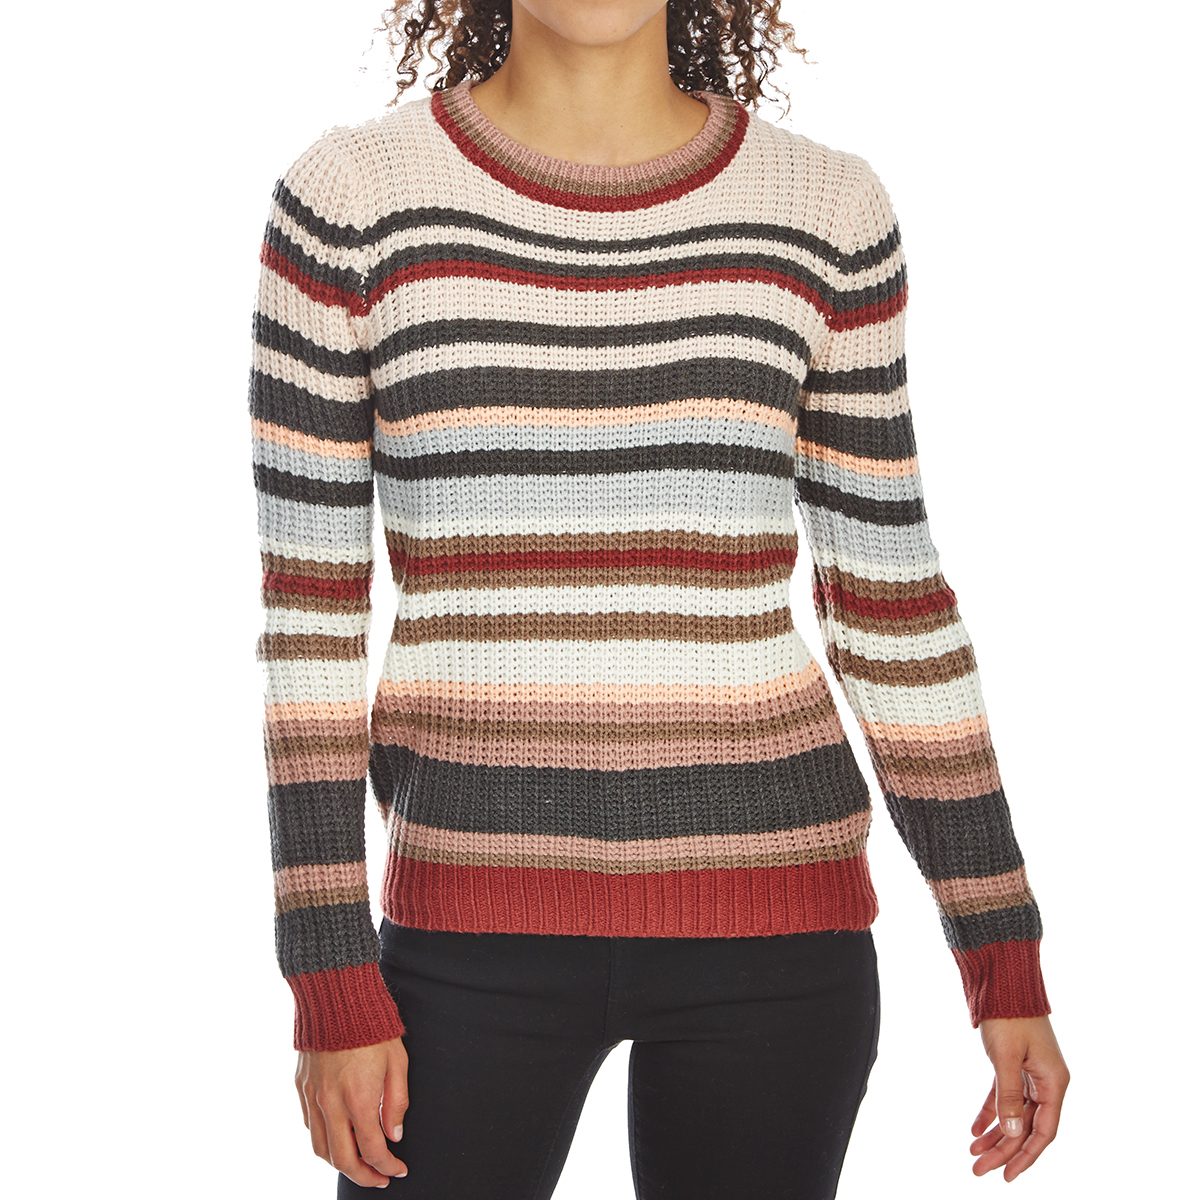 Pink Rose Juniors' Striped Pullover Long-Sleeve Sweater - Various Patterns, M